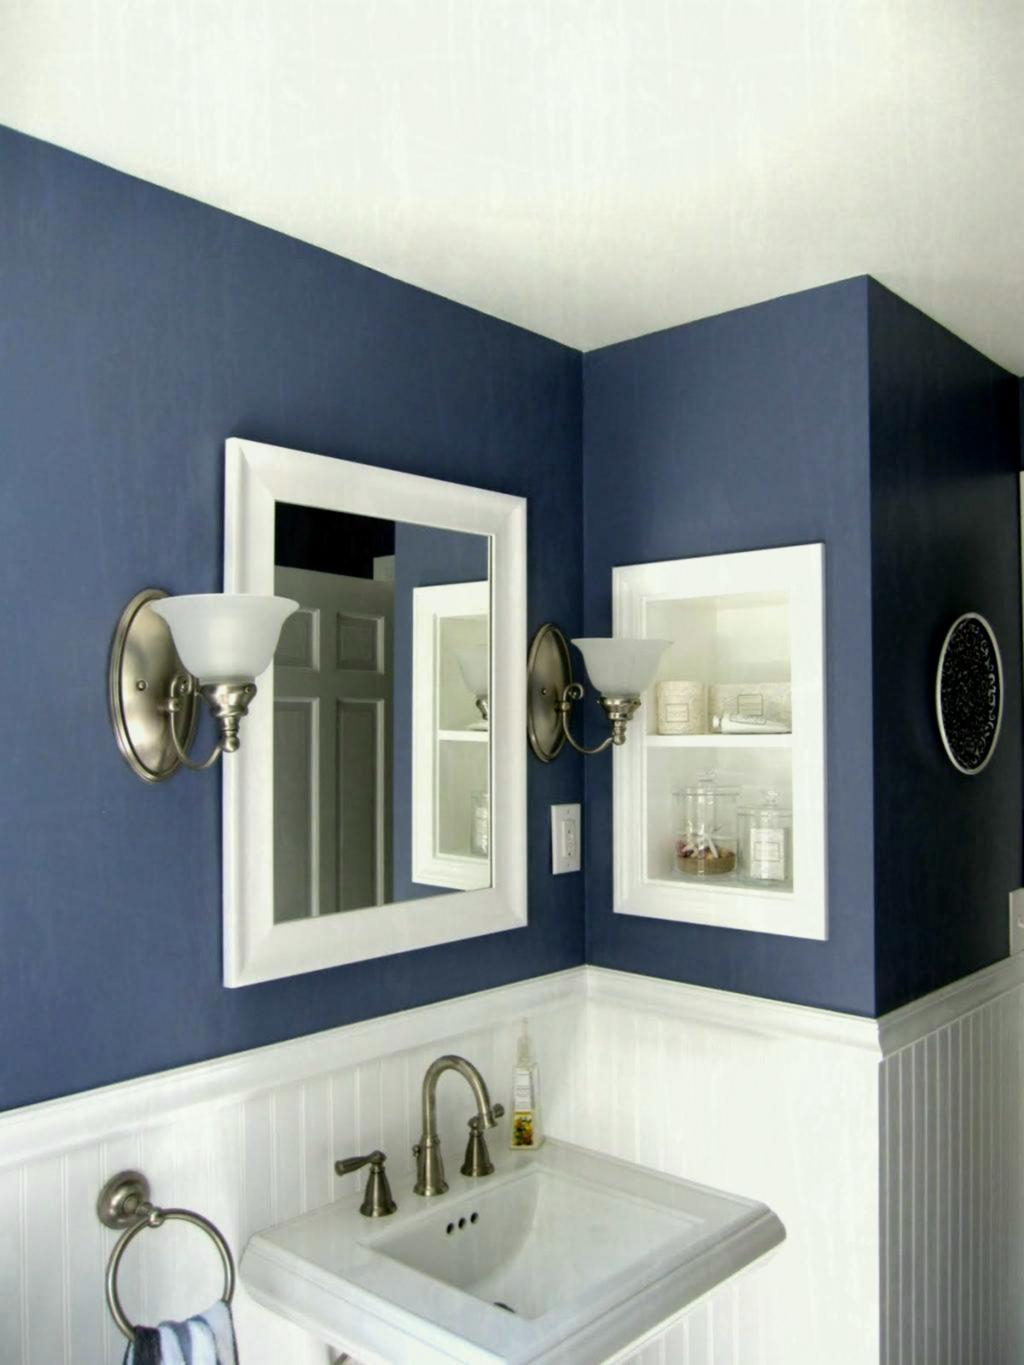 Lovely Perfect Navy Blue Accents Wall Paint For Minimalist Bathroom Design inside Fresh Navy Blue Bathroom Paint